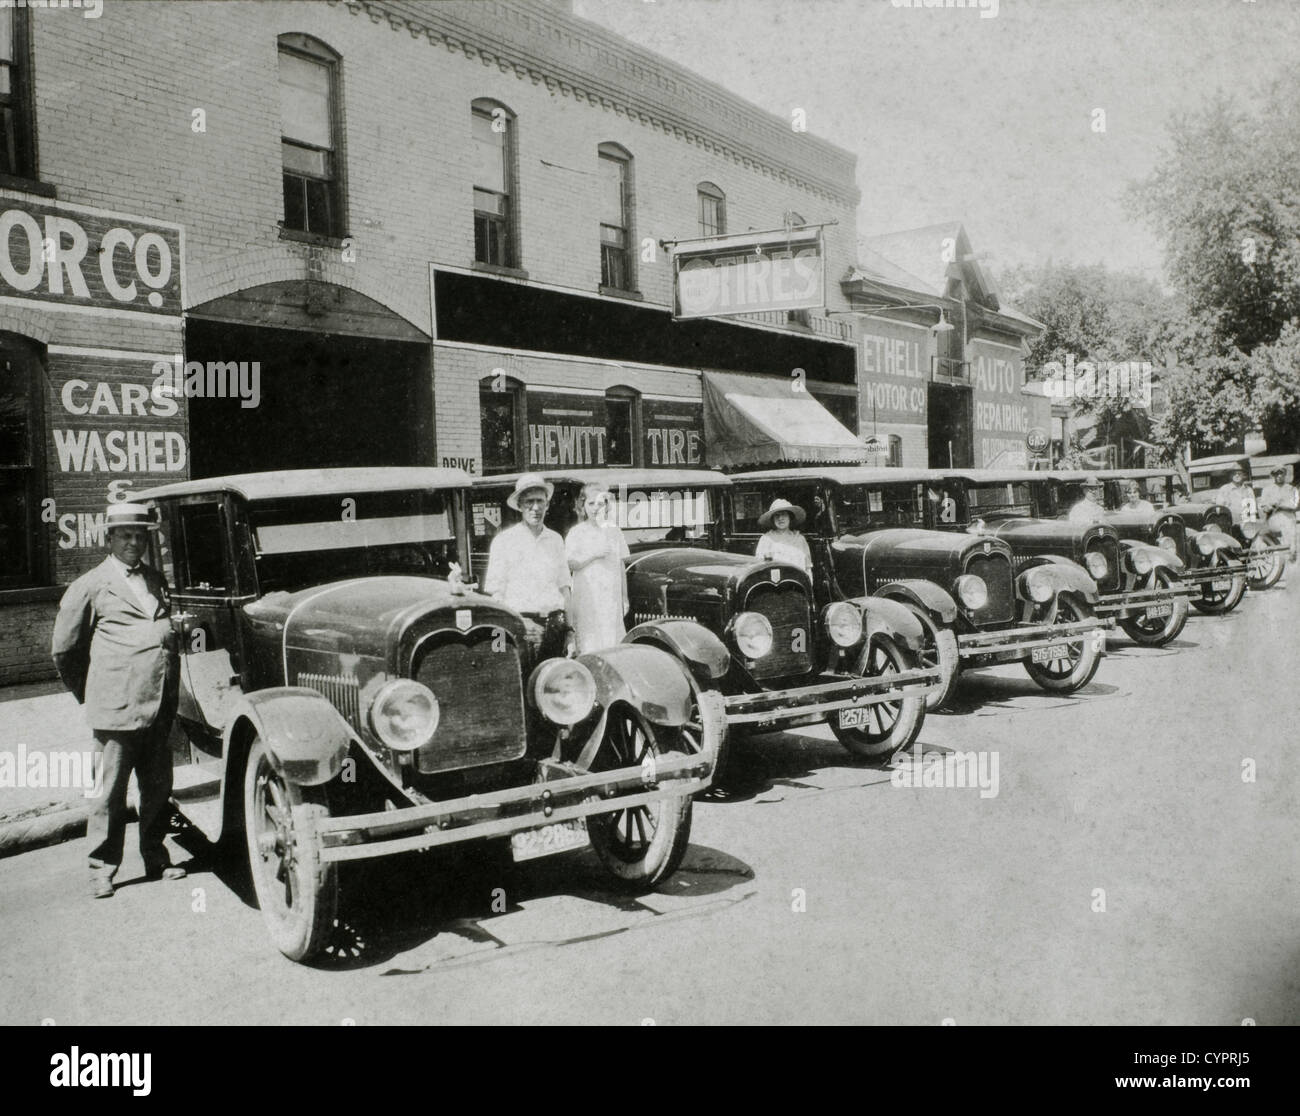 People Posed With Row of Automobiles, USA, 1921 - Stock Image